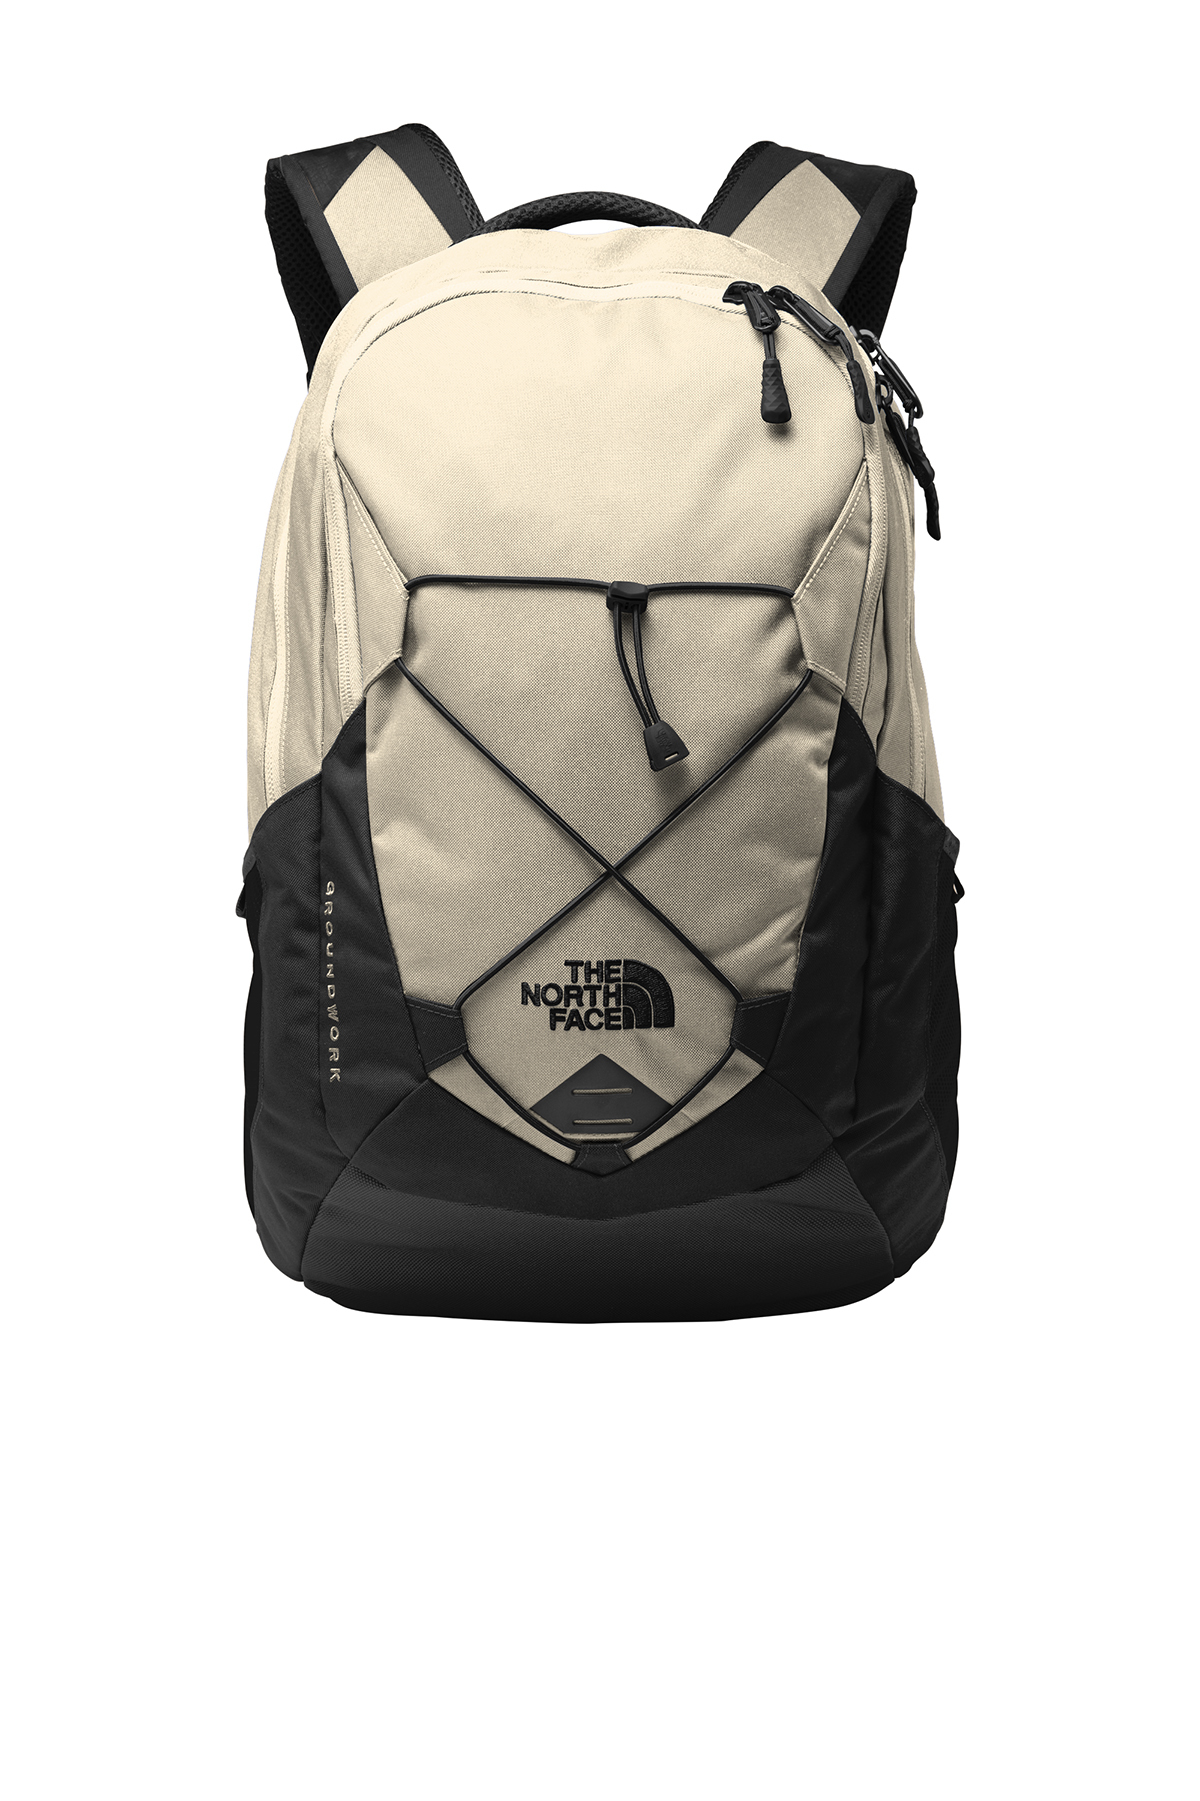 The North Face NF0A3KX6 - Groundwork Backpack